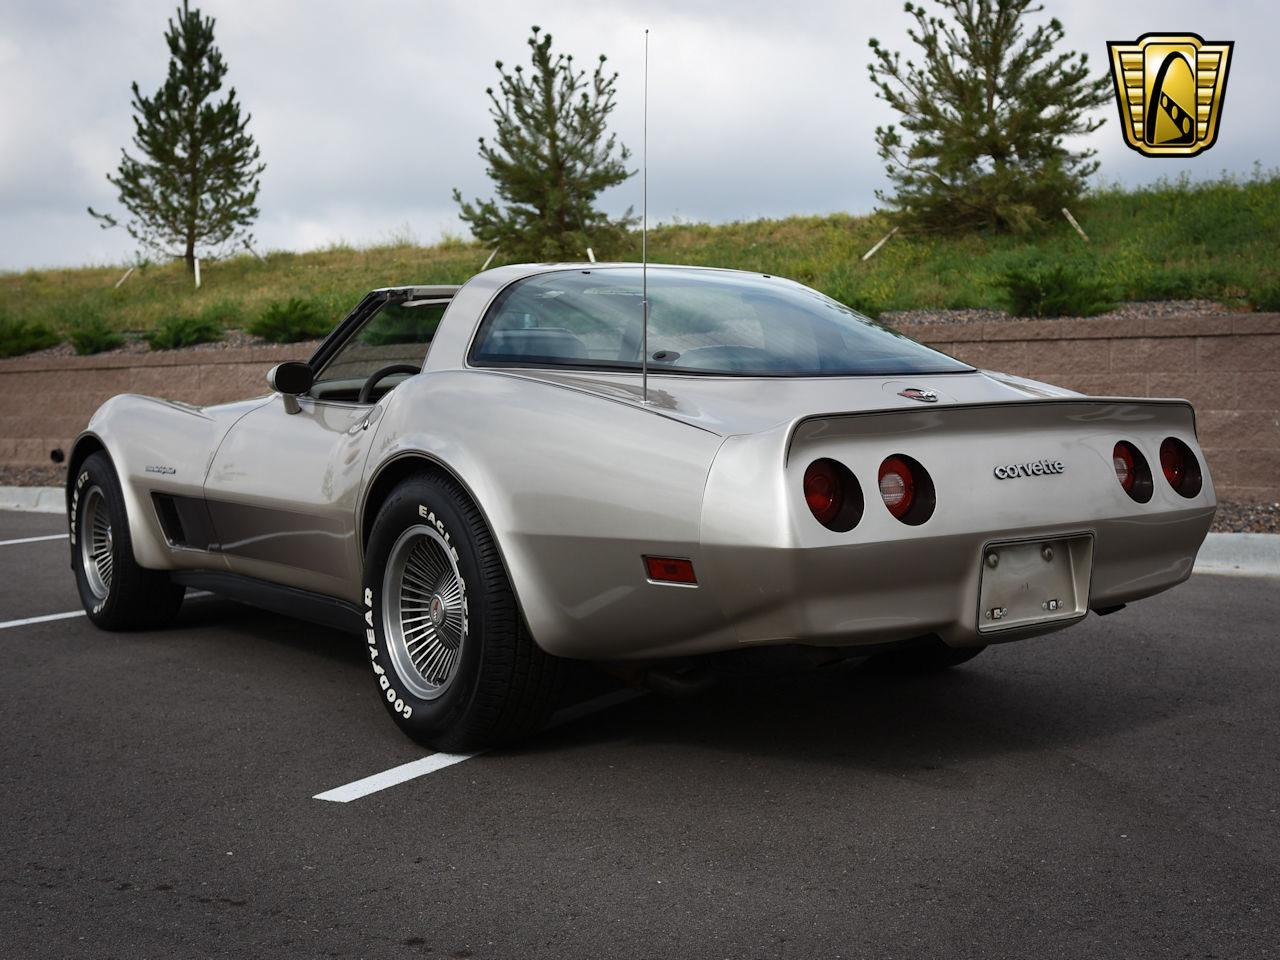 Large Picture of 1982 Chevrolet Corvette located in O'Fallon Illinois - $18,995.00 - LNRR